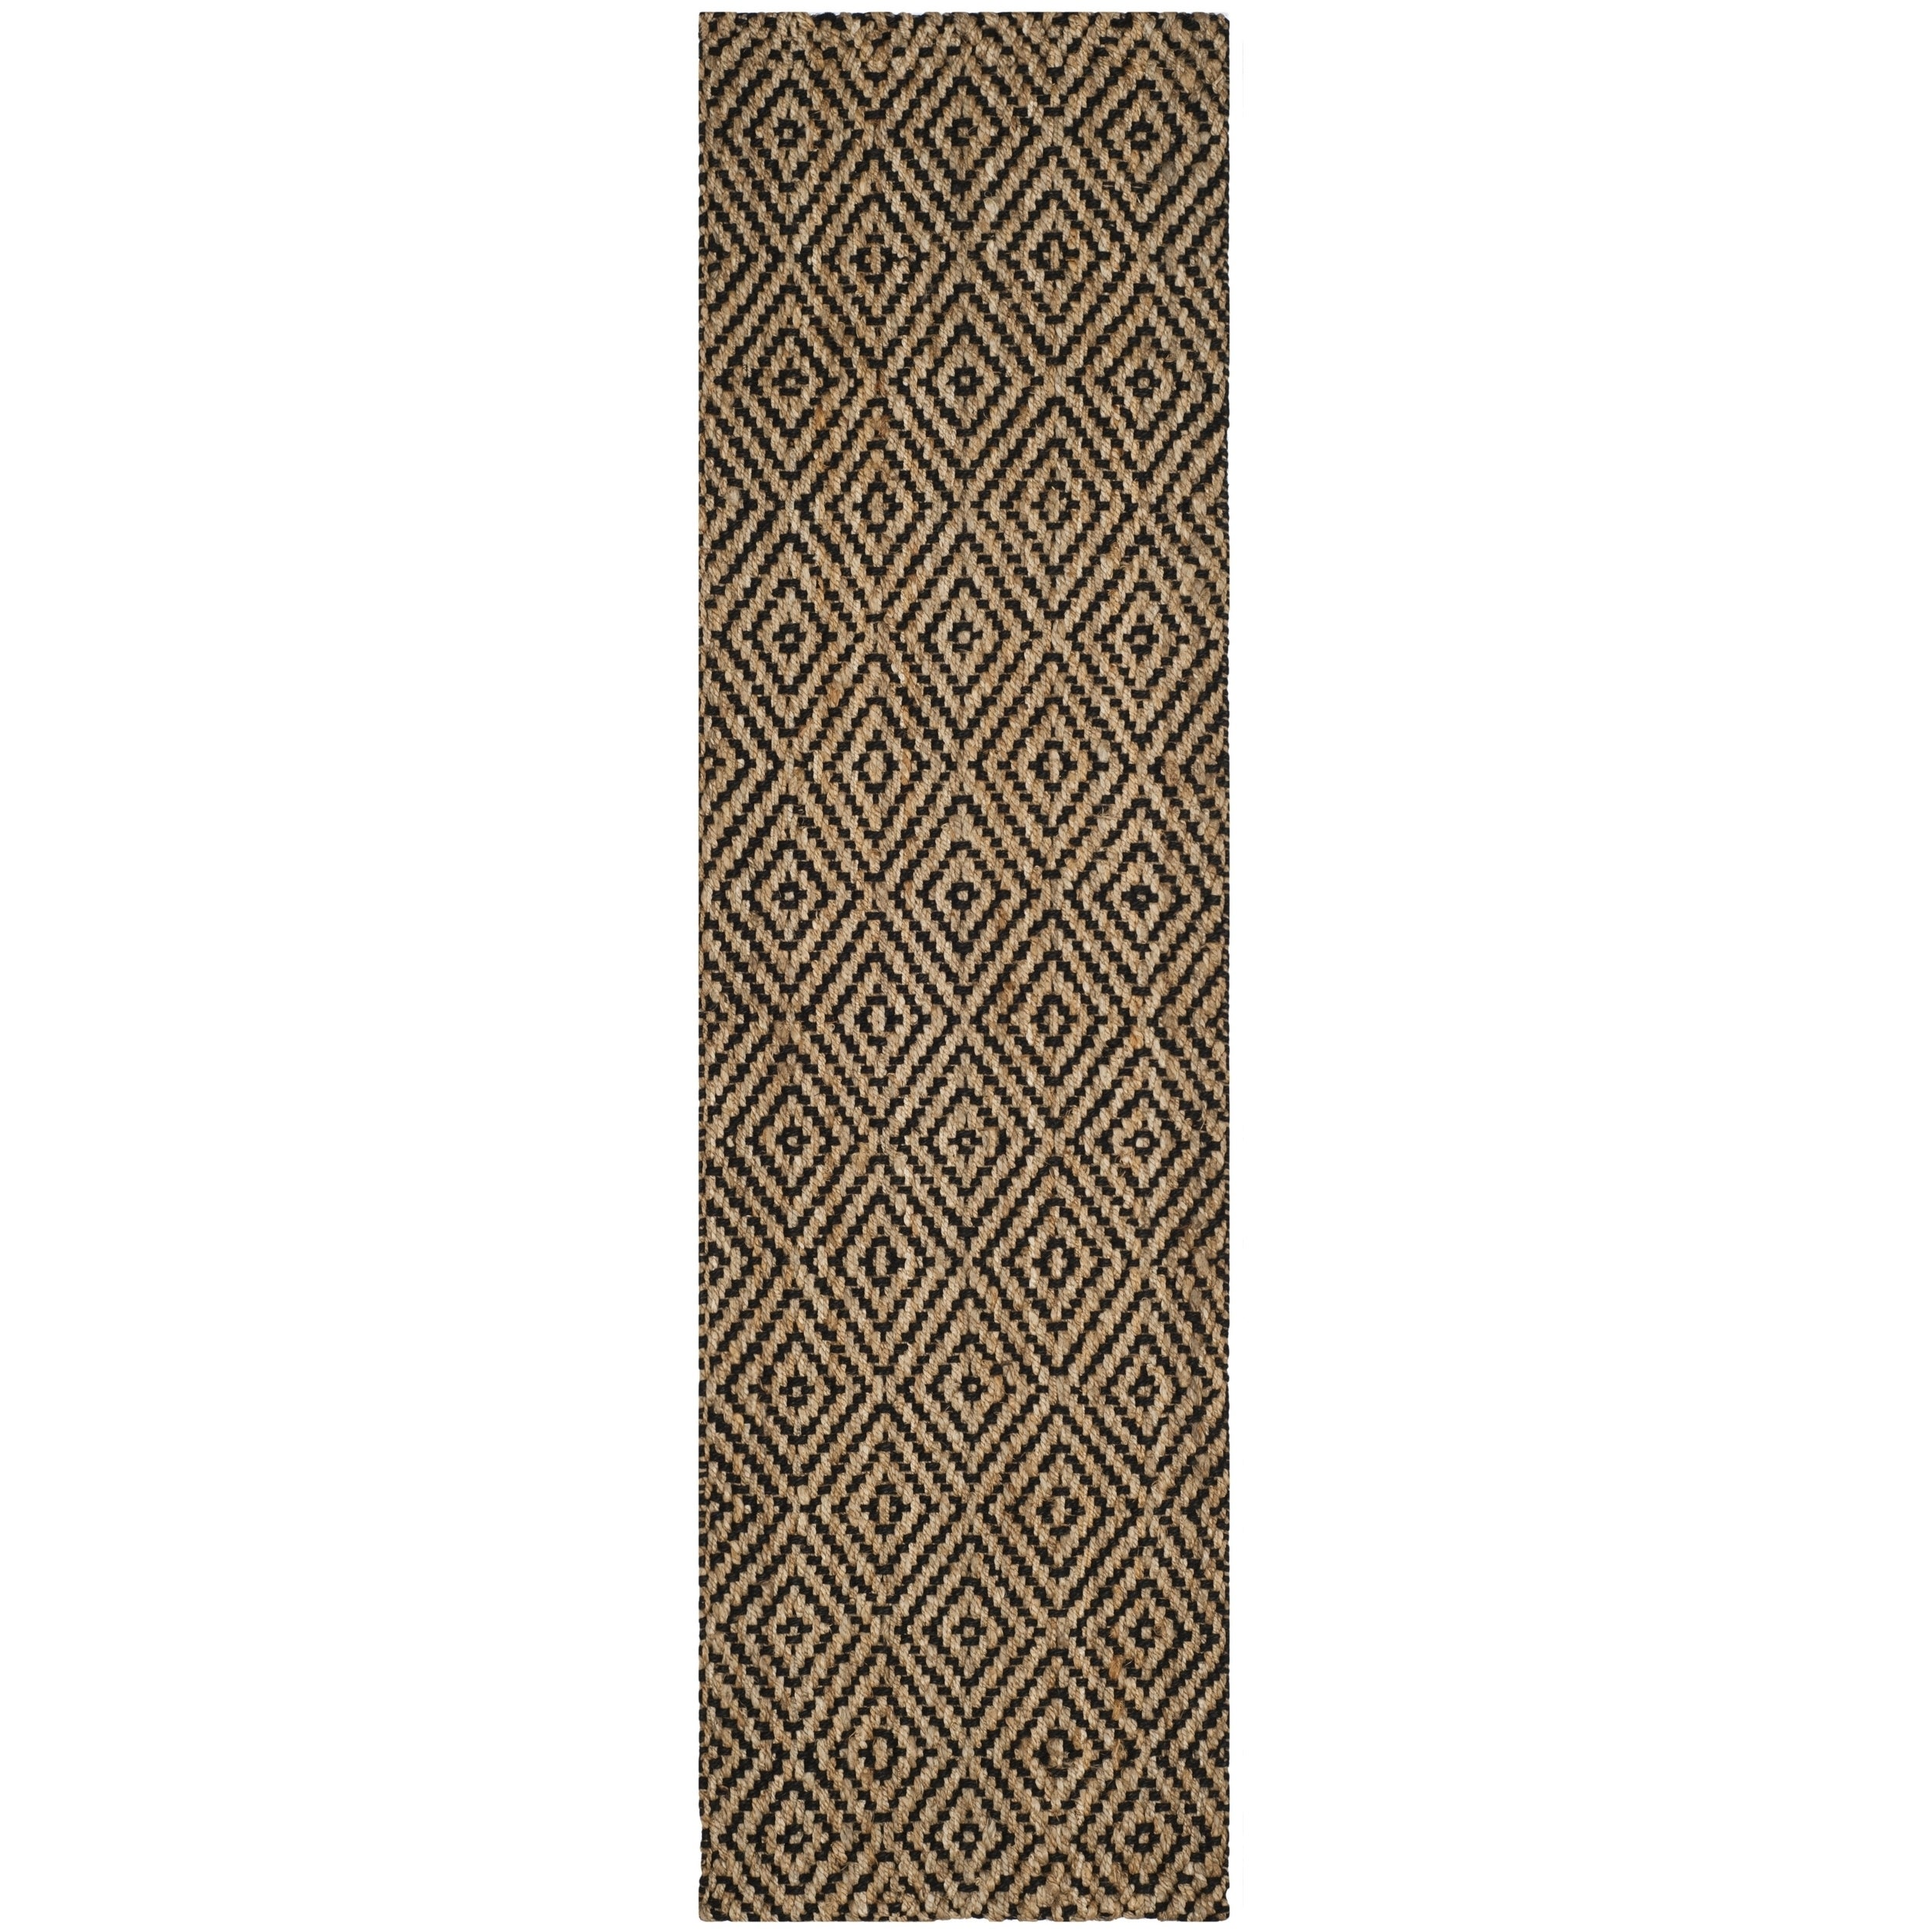 Safavieh Natural Fiber Coastal Solid Hand Woven Jute Black Runner Rug 2 3 X 16 On Free Shipping Today Com 16413044